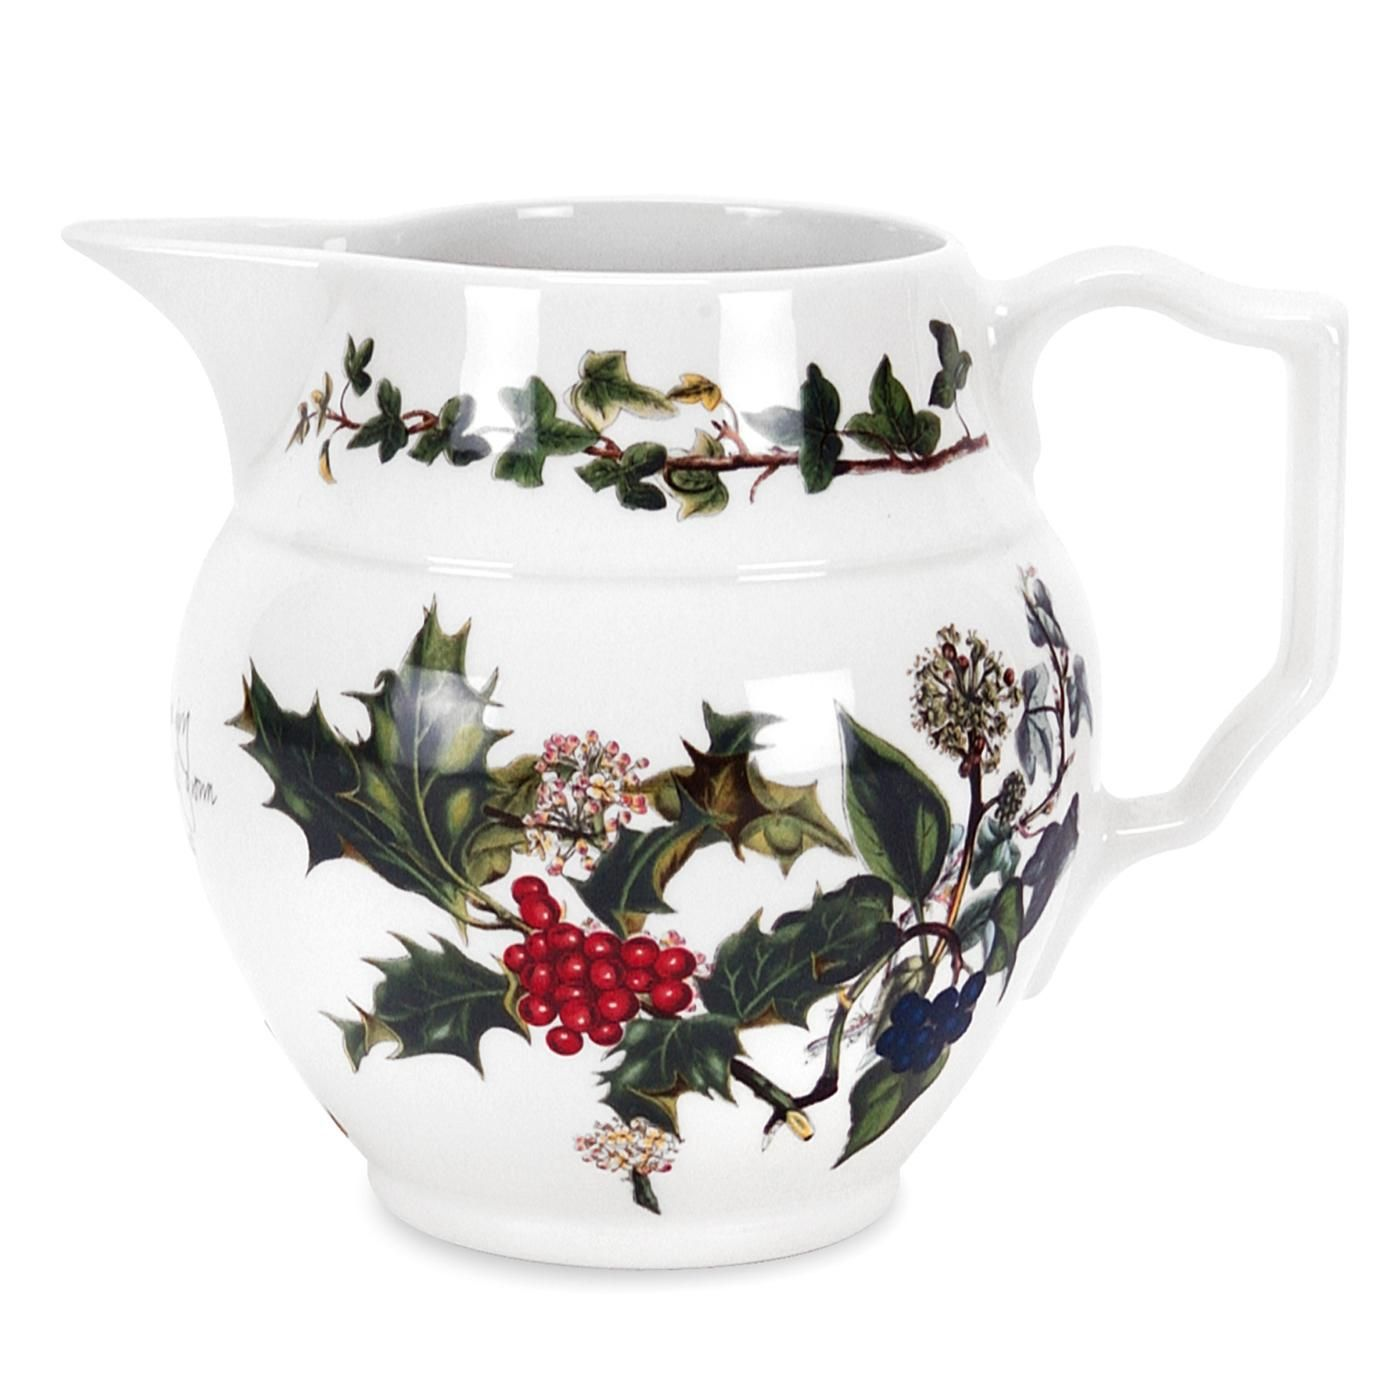 Portmeirion The Holly and the Ivy Staffordshire Jug 0.5pt